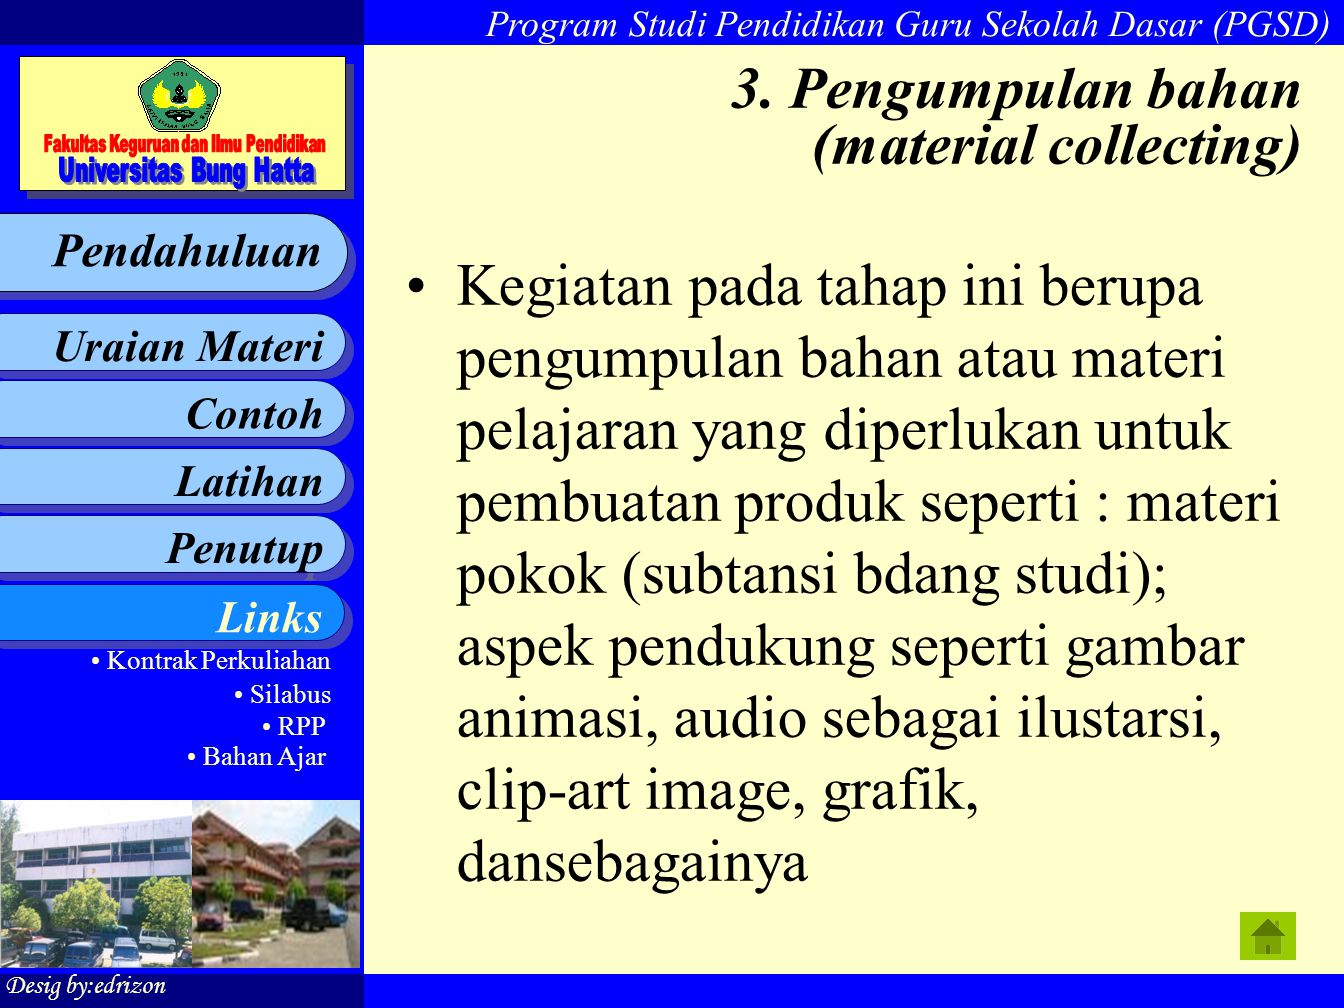 3. Pengumpulan bahan (material collecting)